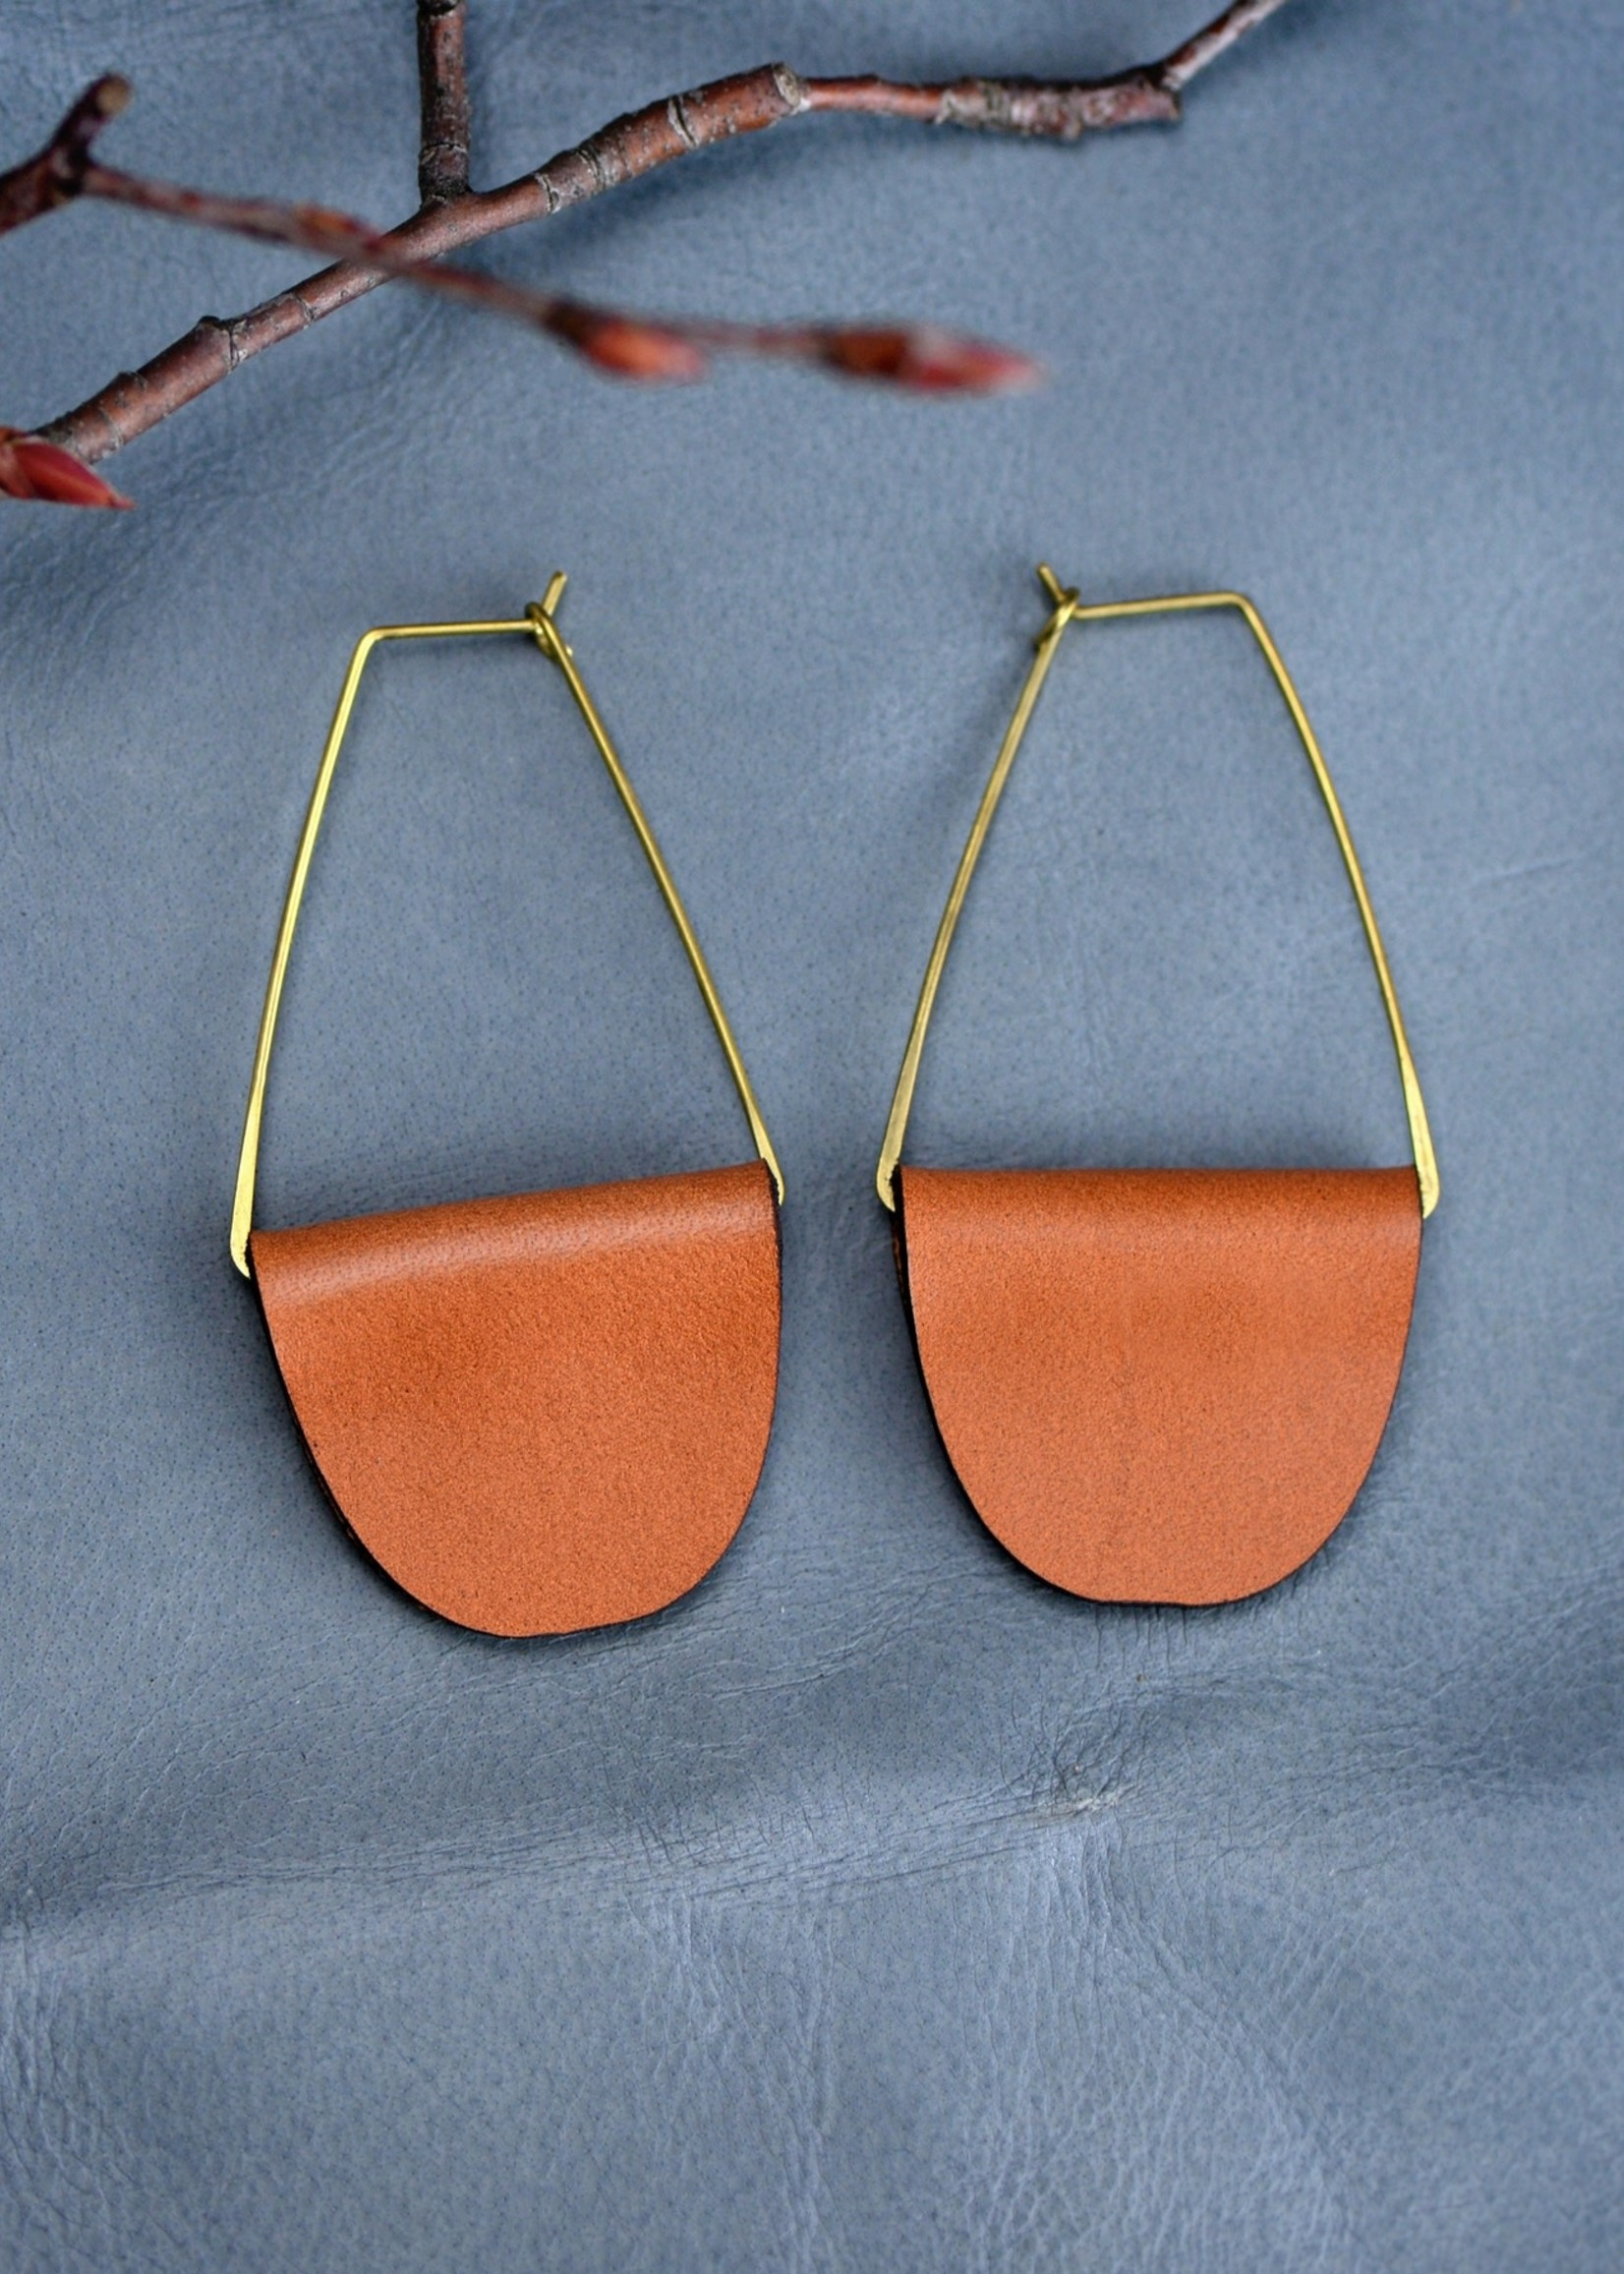 Fashionable Leather Earrings - Brown